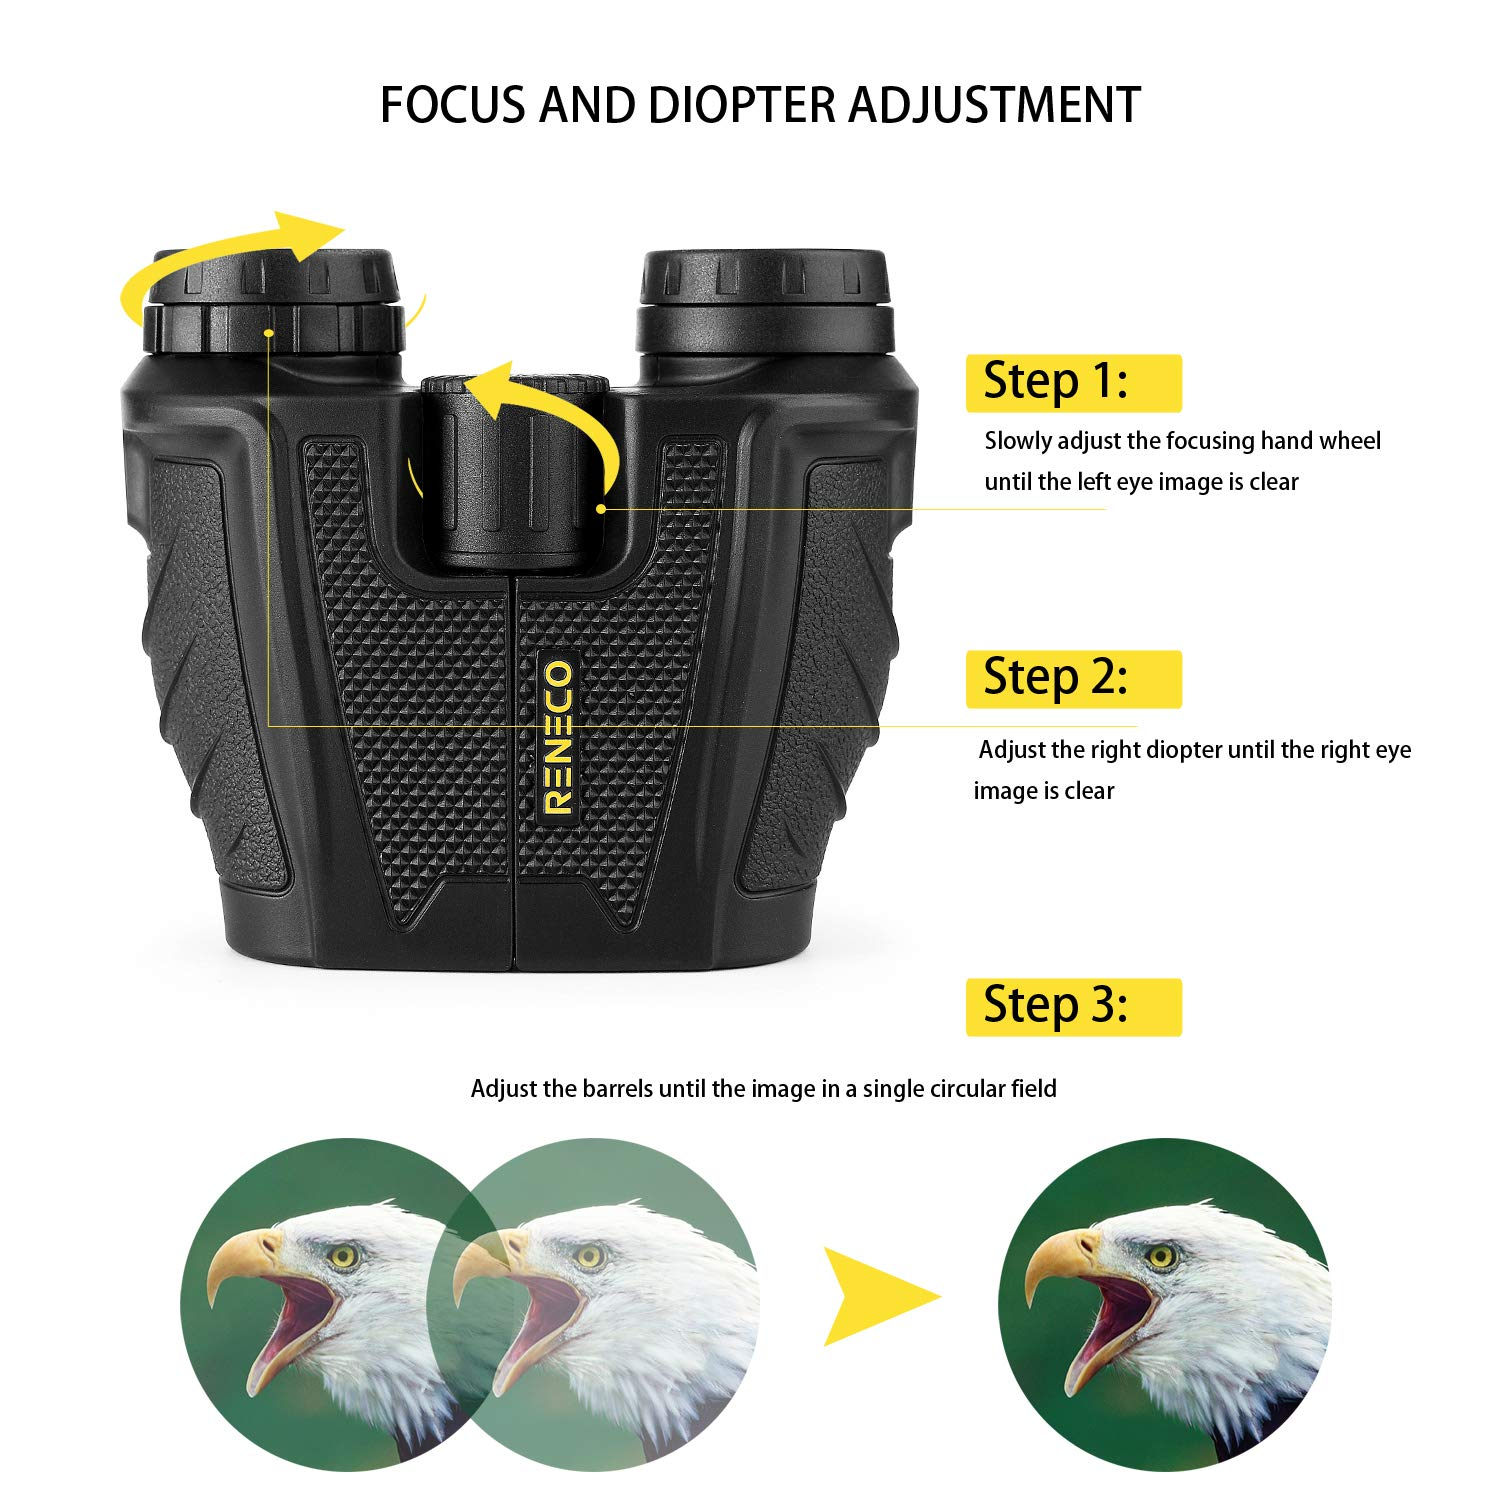 Wide Angle Best for Bird Watching Theater BAK4 Prism Concerts Opera /& More Hiking Waterproof Compact Binoculars for Adults and Kids Low Light Night Vision 10x Magnification Outdoor Sport